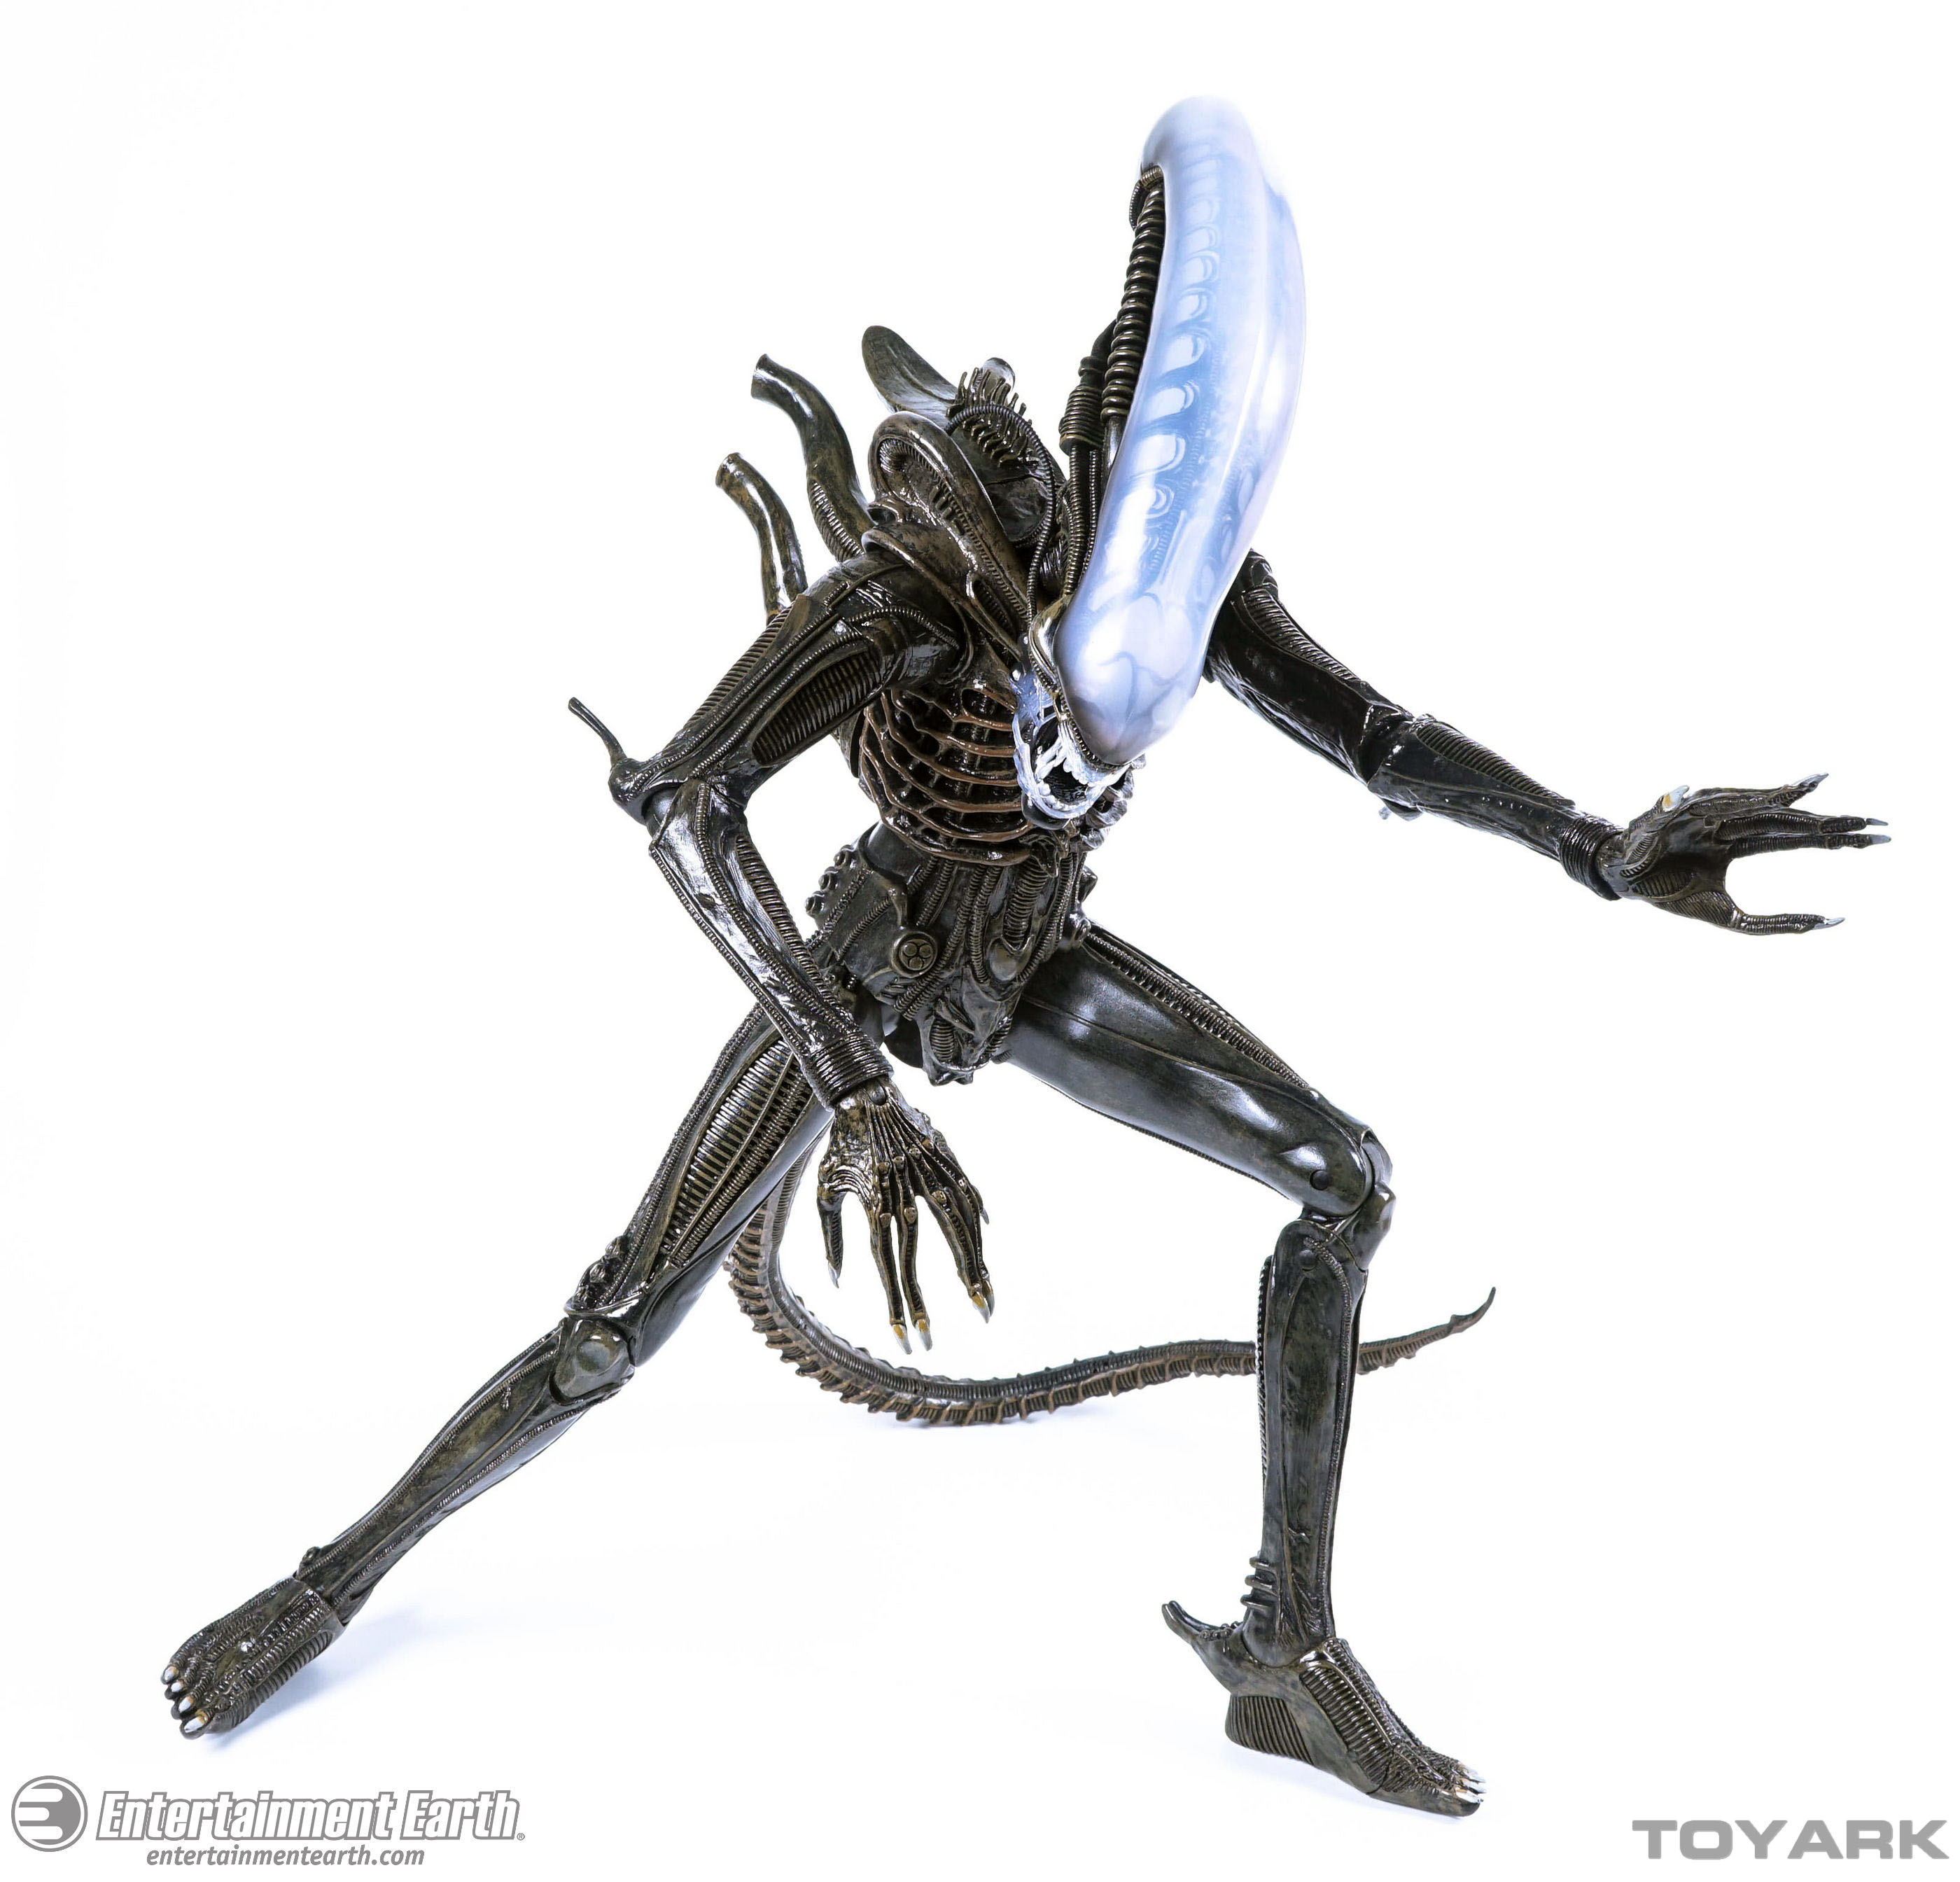 http://news.toyark.com/wp-content/uploads/sites/4/2016/01/NECA-Quarter-Scale-Big-Chap-Alien-053.jpg